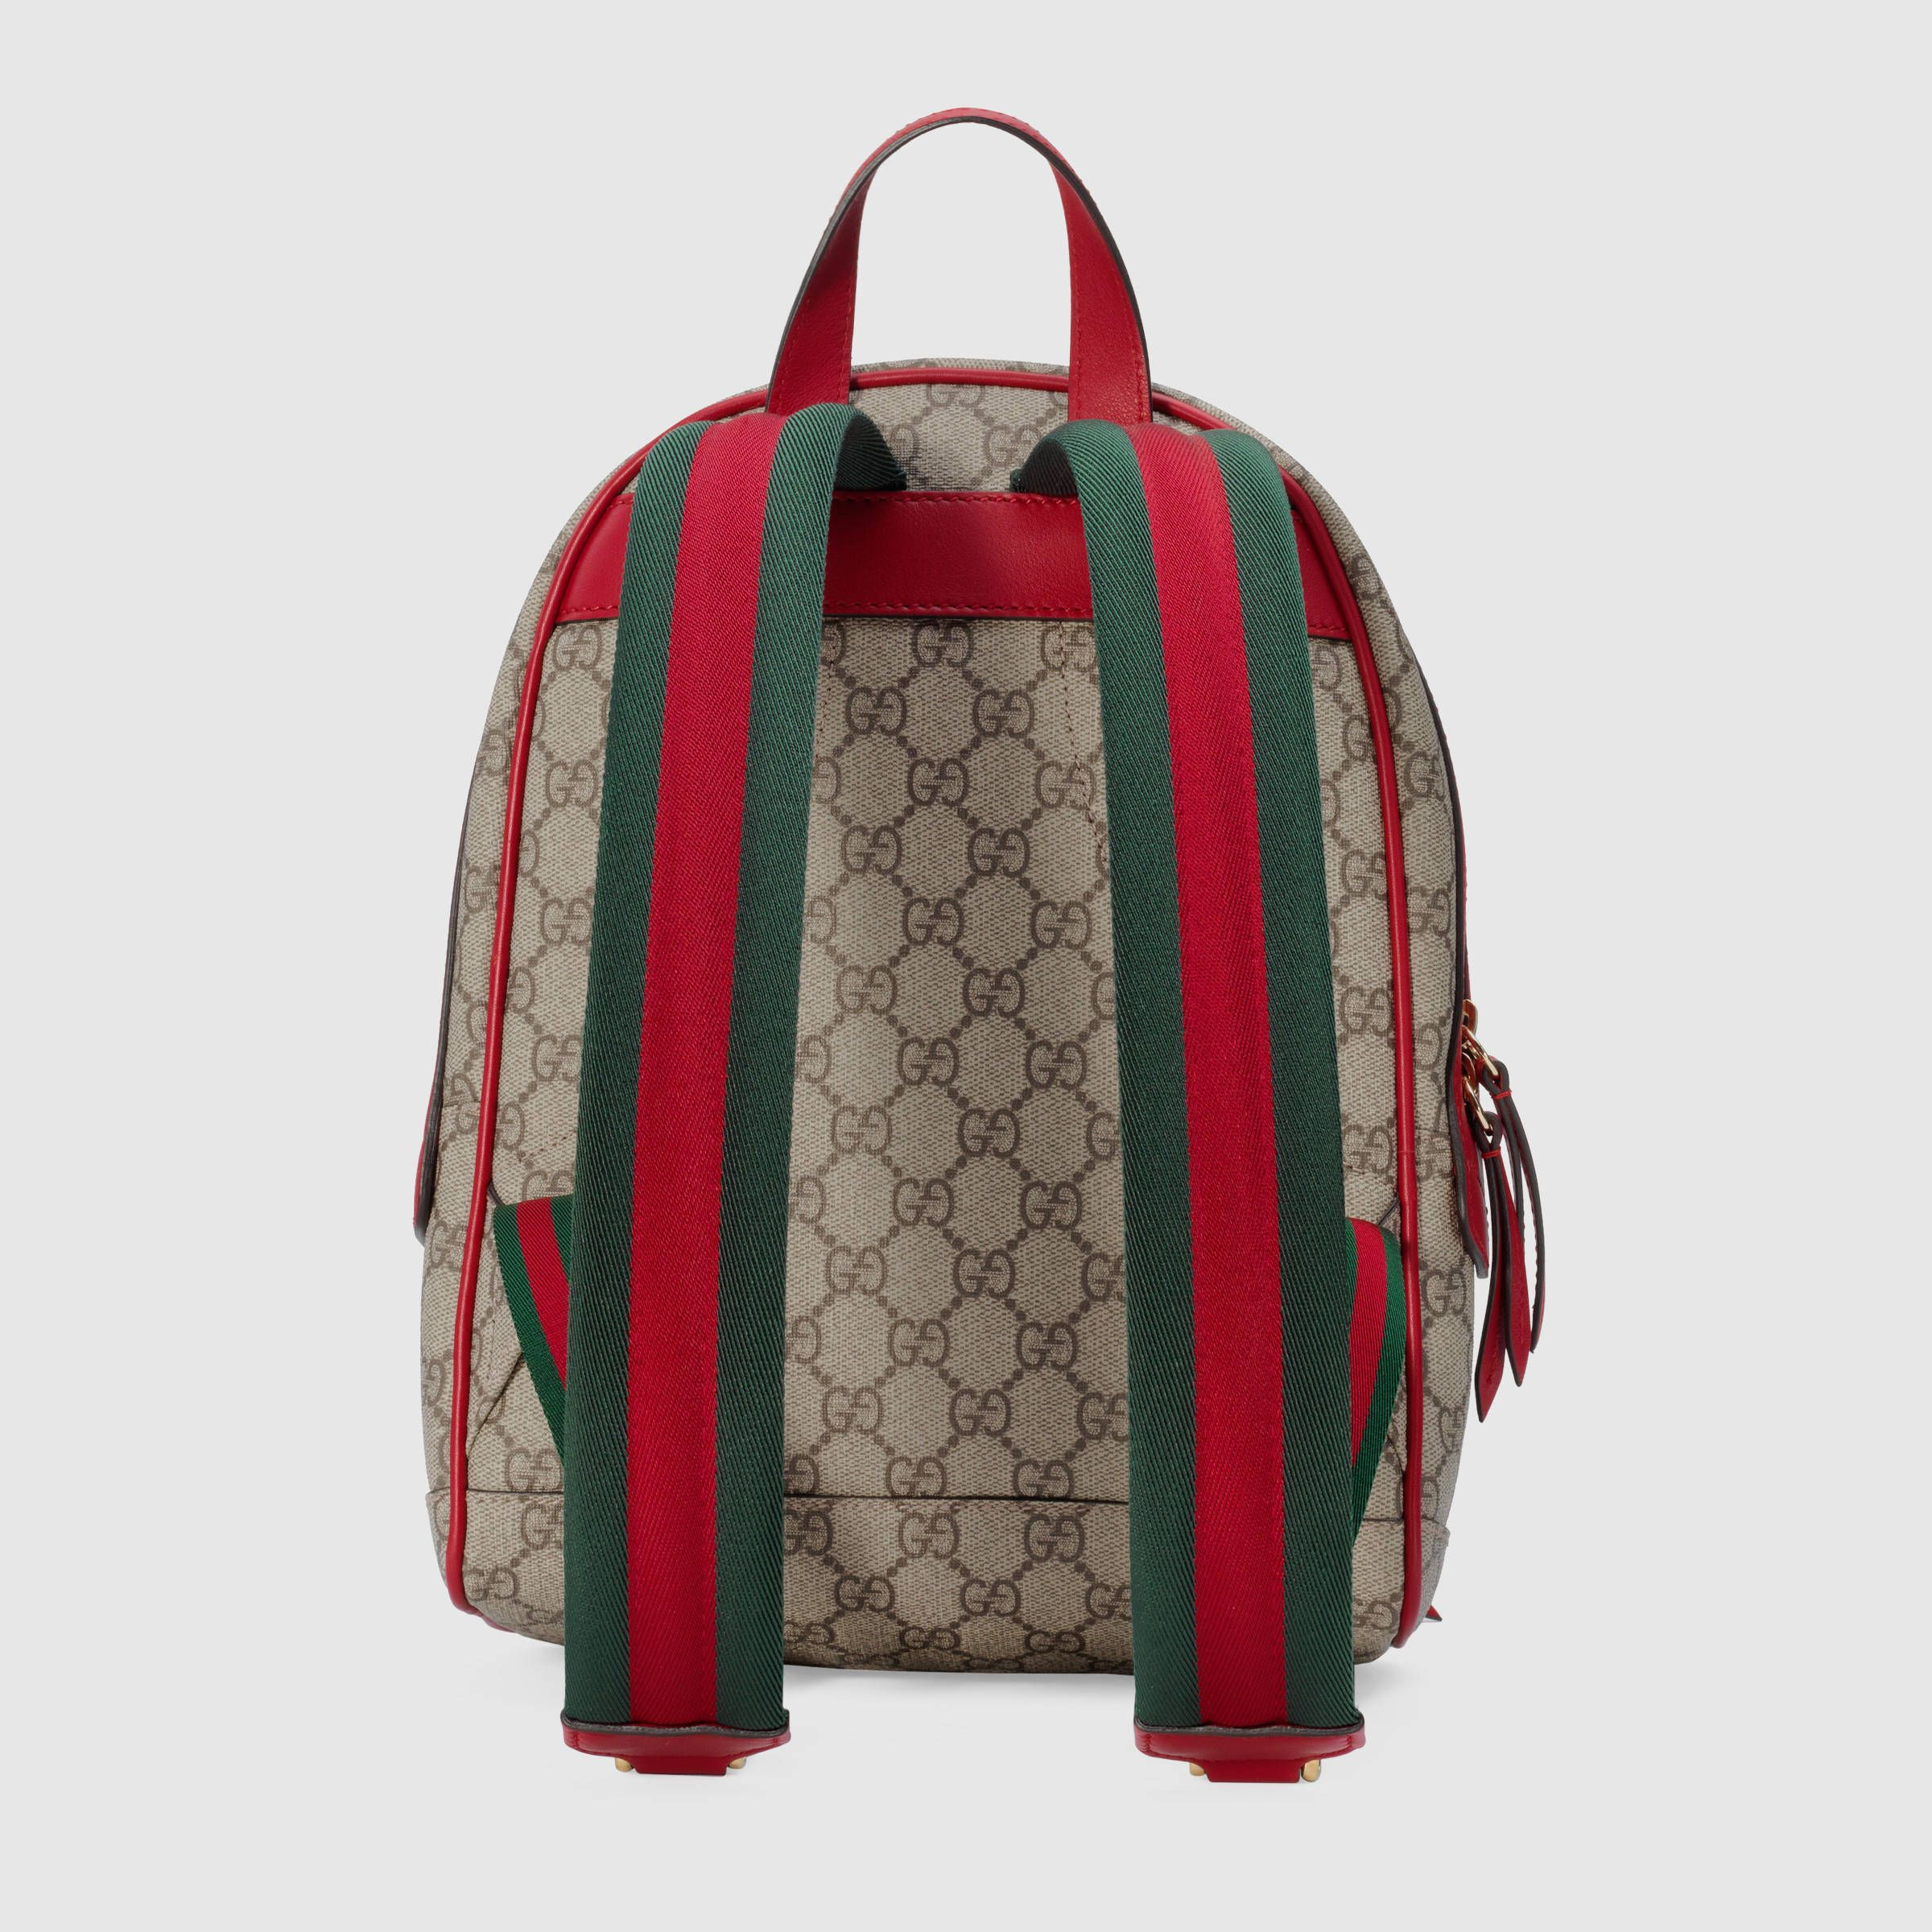 90f61ceef5556f Limited Edition GG Supreme backpack - Gucci Women's Backpacks ...